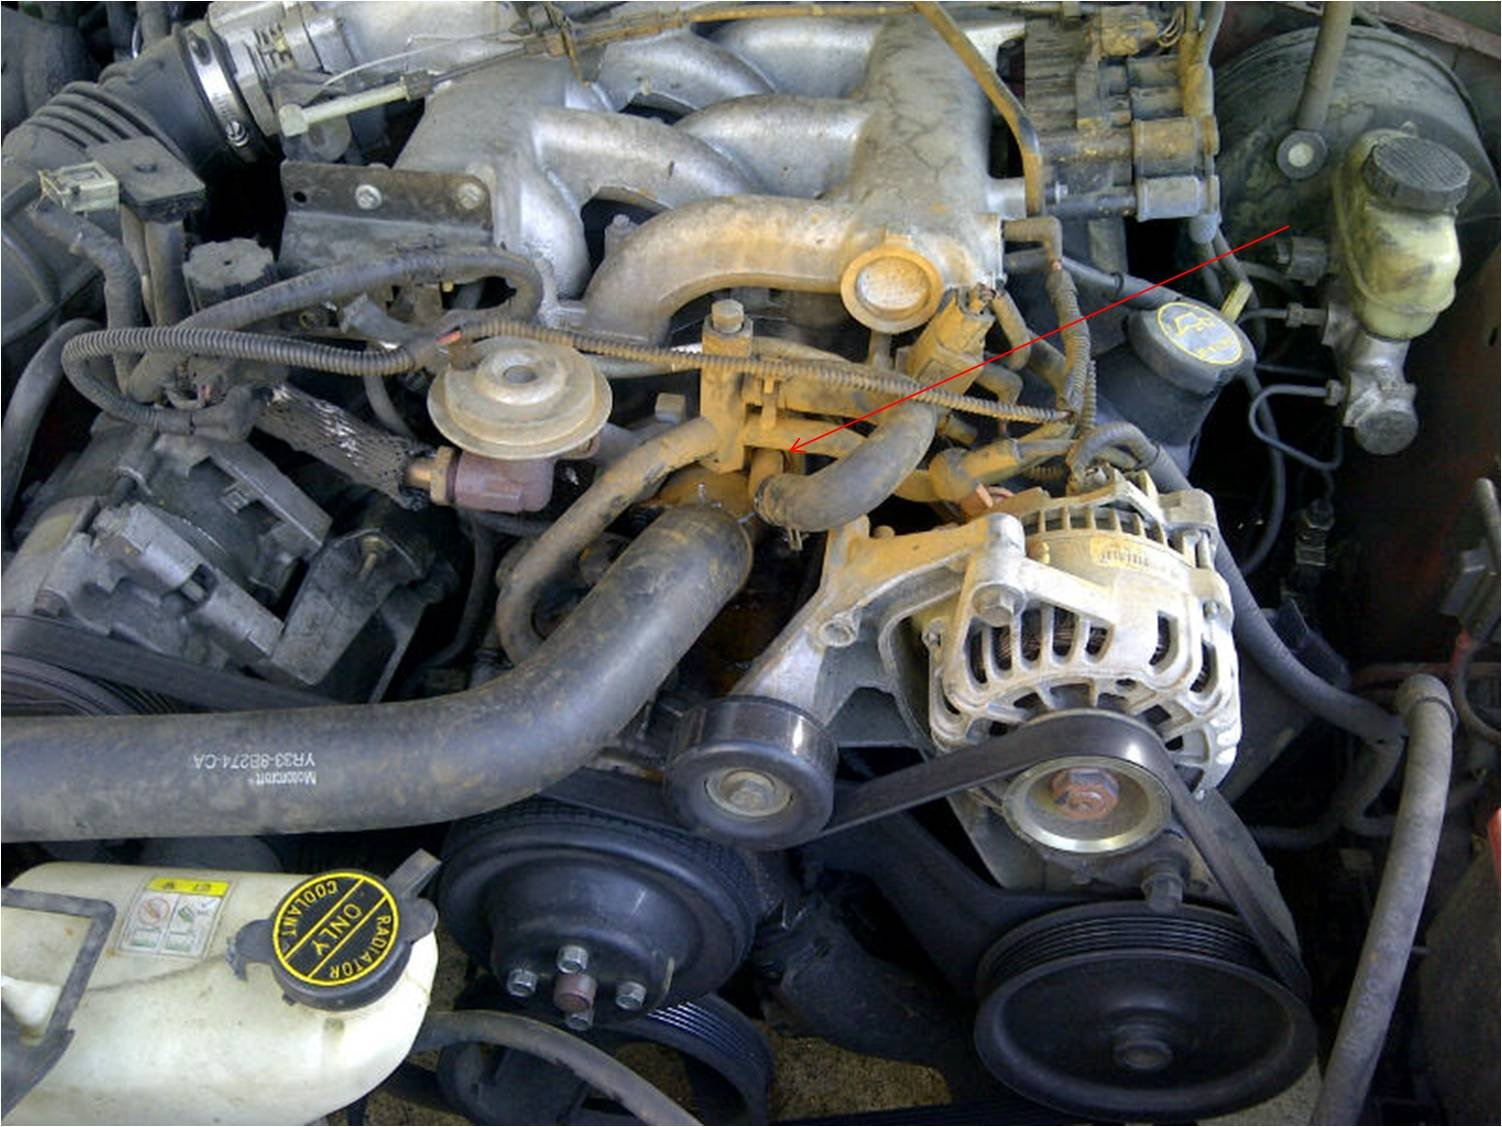 ford 4 6l engine diagram 98 jeep grand cherokee stereo wiring 2001 mustang 3.8l, unknown coolant pipe leak - forum